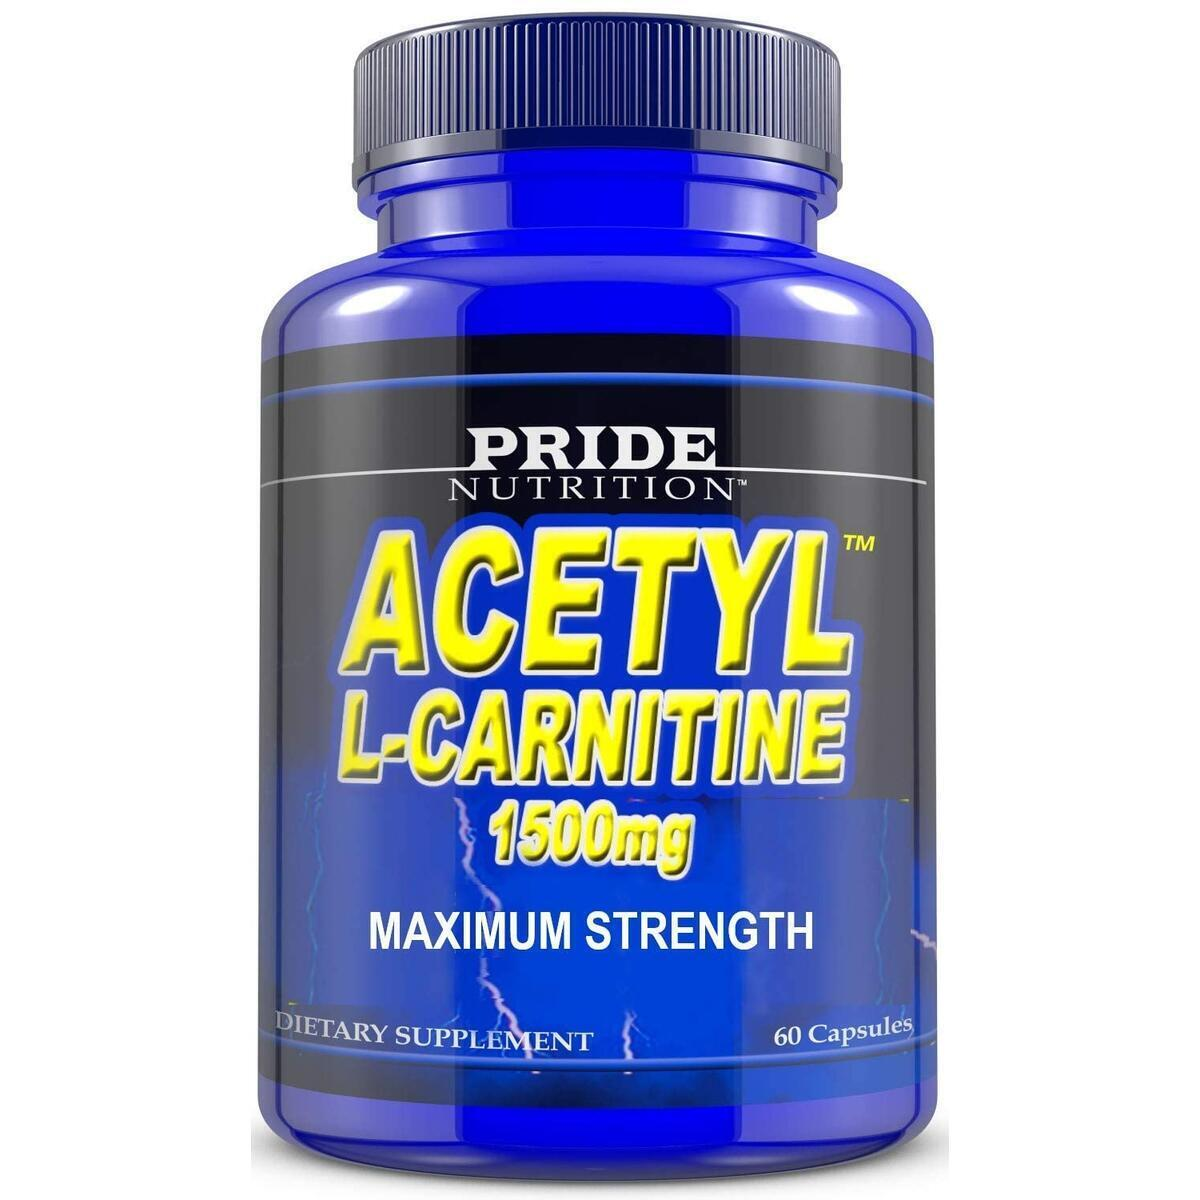 Acetyl L Carnitine 1500mg Supplement for Energy, Body Recomposition, Mental Sharpness, Memory & Focus- Antioxidant Brain Protection- Zero Fillers- Extra Strength Premium Grade L-Carnitine 60 CapsulesAcetyl L Carnitine 1500mg Supplement for Energy, Body Re